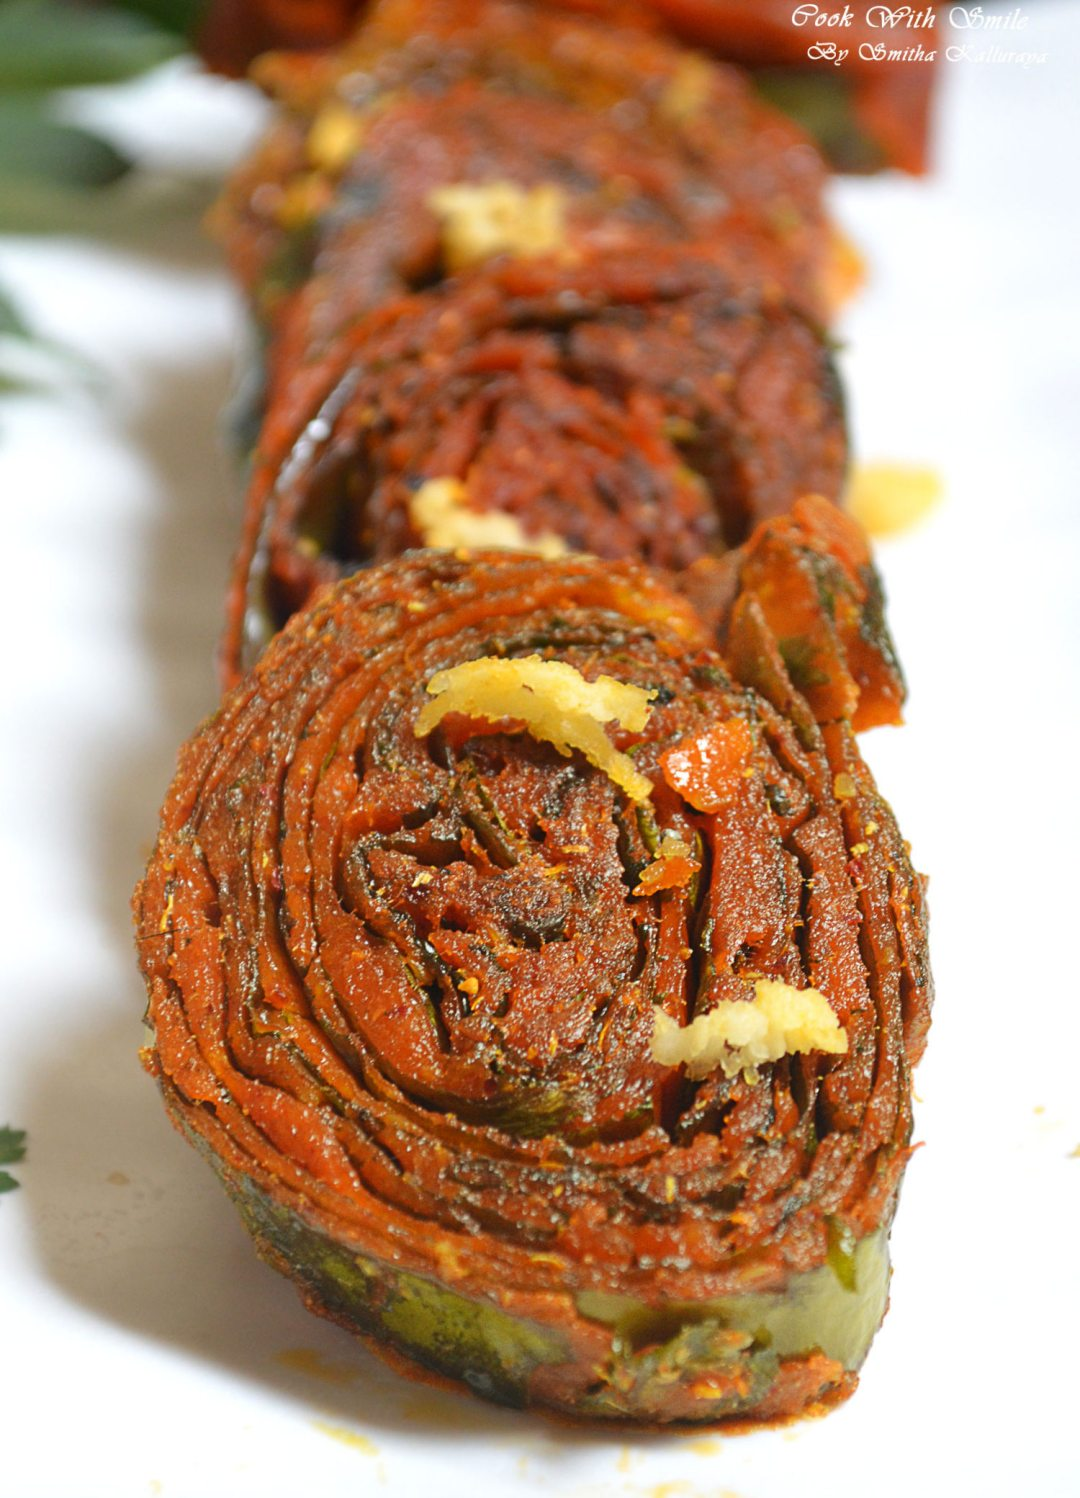 Pathrode patra colacassia leaf rolls recipe cook with smile kesuvina elekannadaarbi ke patte hinditaro leaves elephants ear plant t all verity of the leaves are good for cooking as few of them cause forumfinder Choice Image